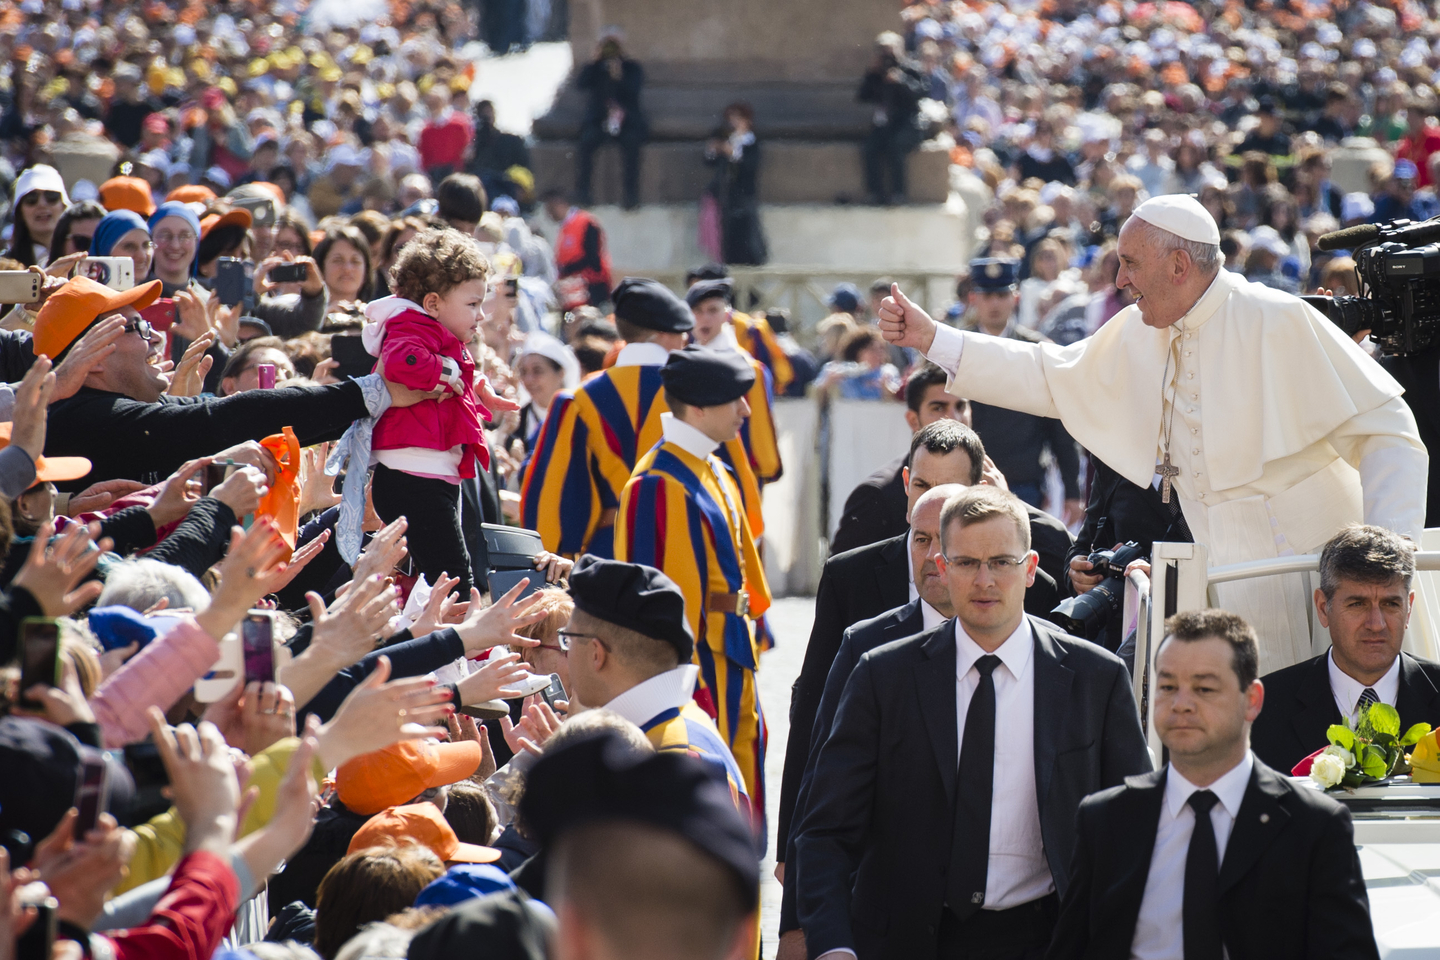 Pope Francis audience Jubilee Year of Mercy April 30, 2016